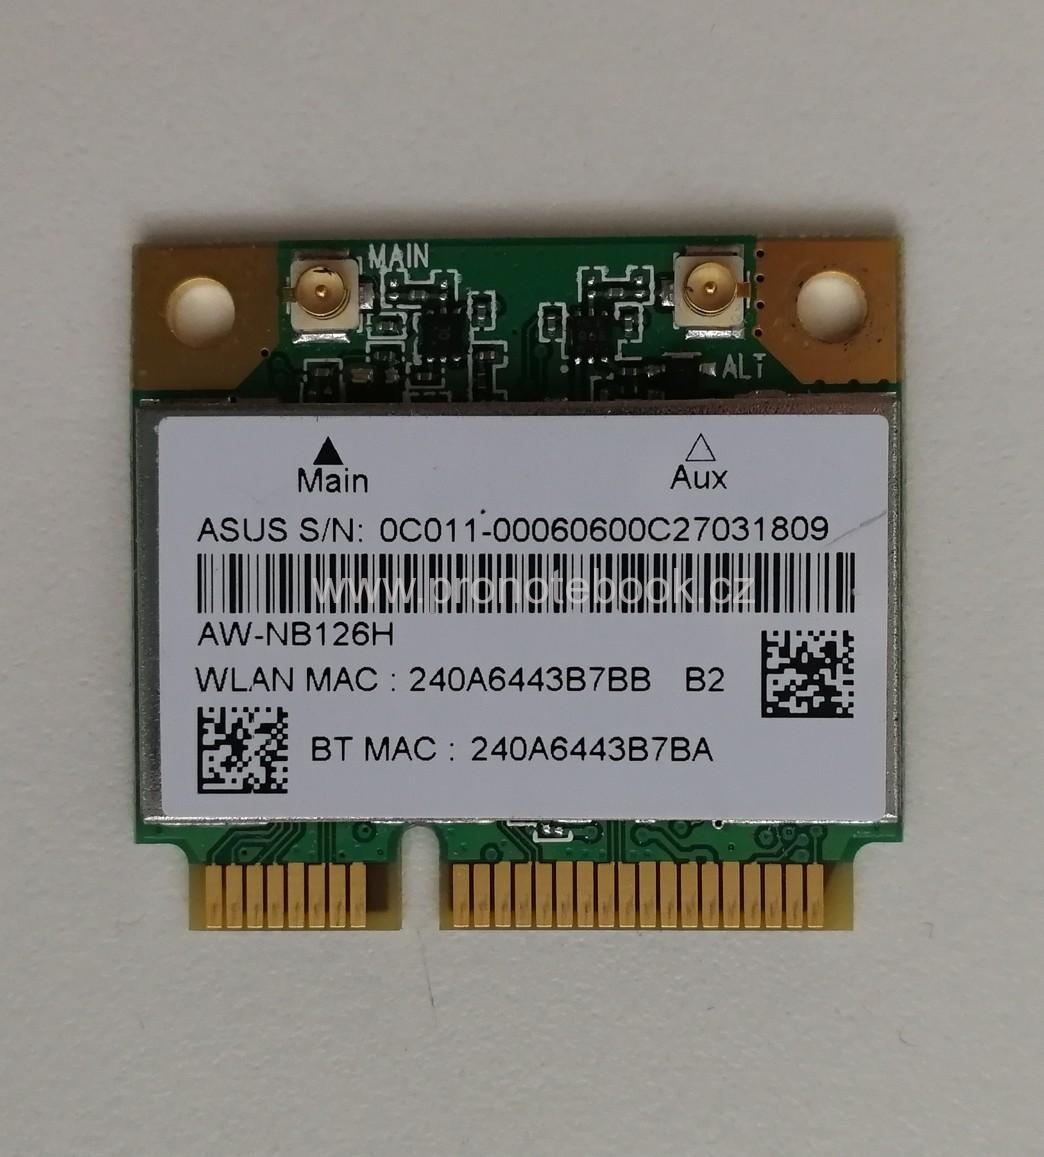 Wifi combo BT 4.0, PCIe mini card 802.11 b/g/n, AW-NB12H, AR5B225